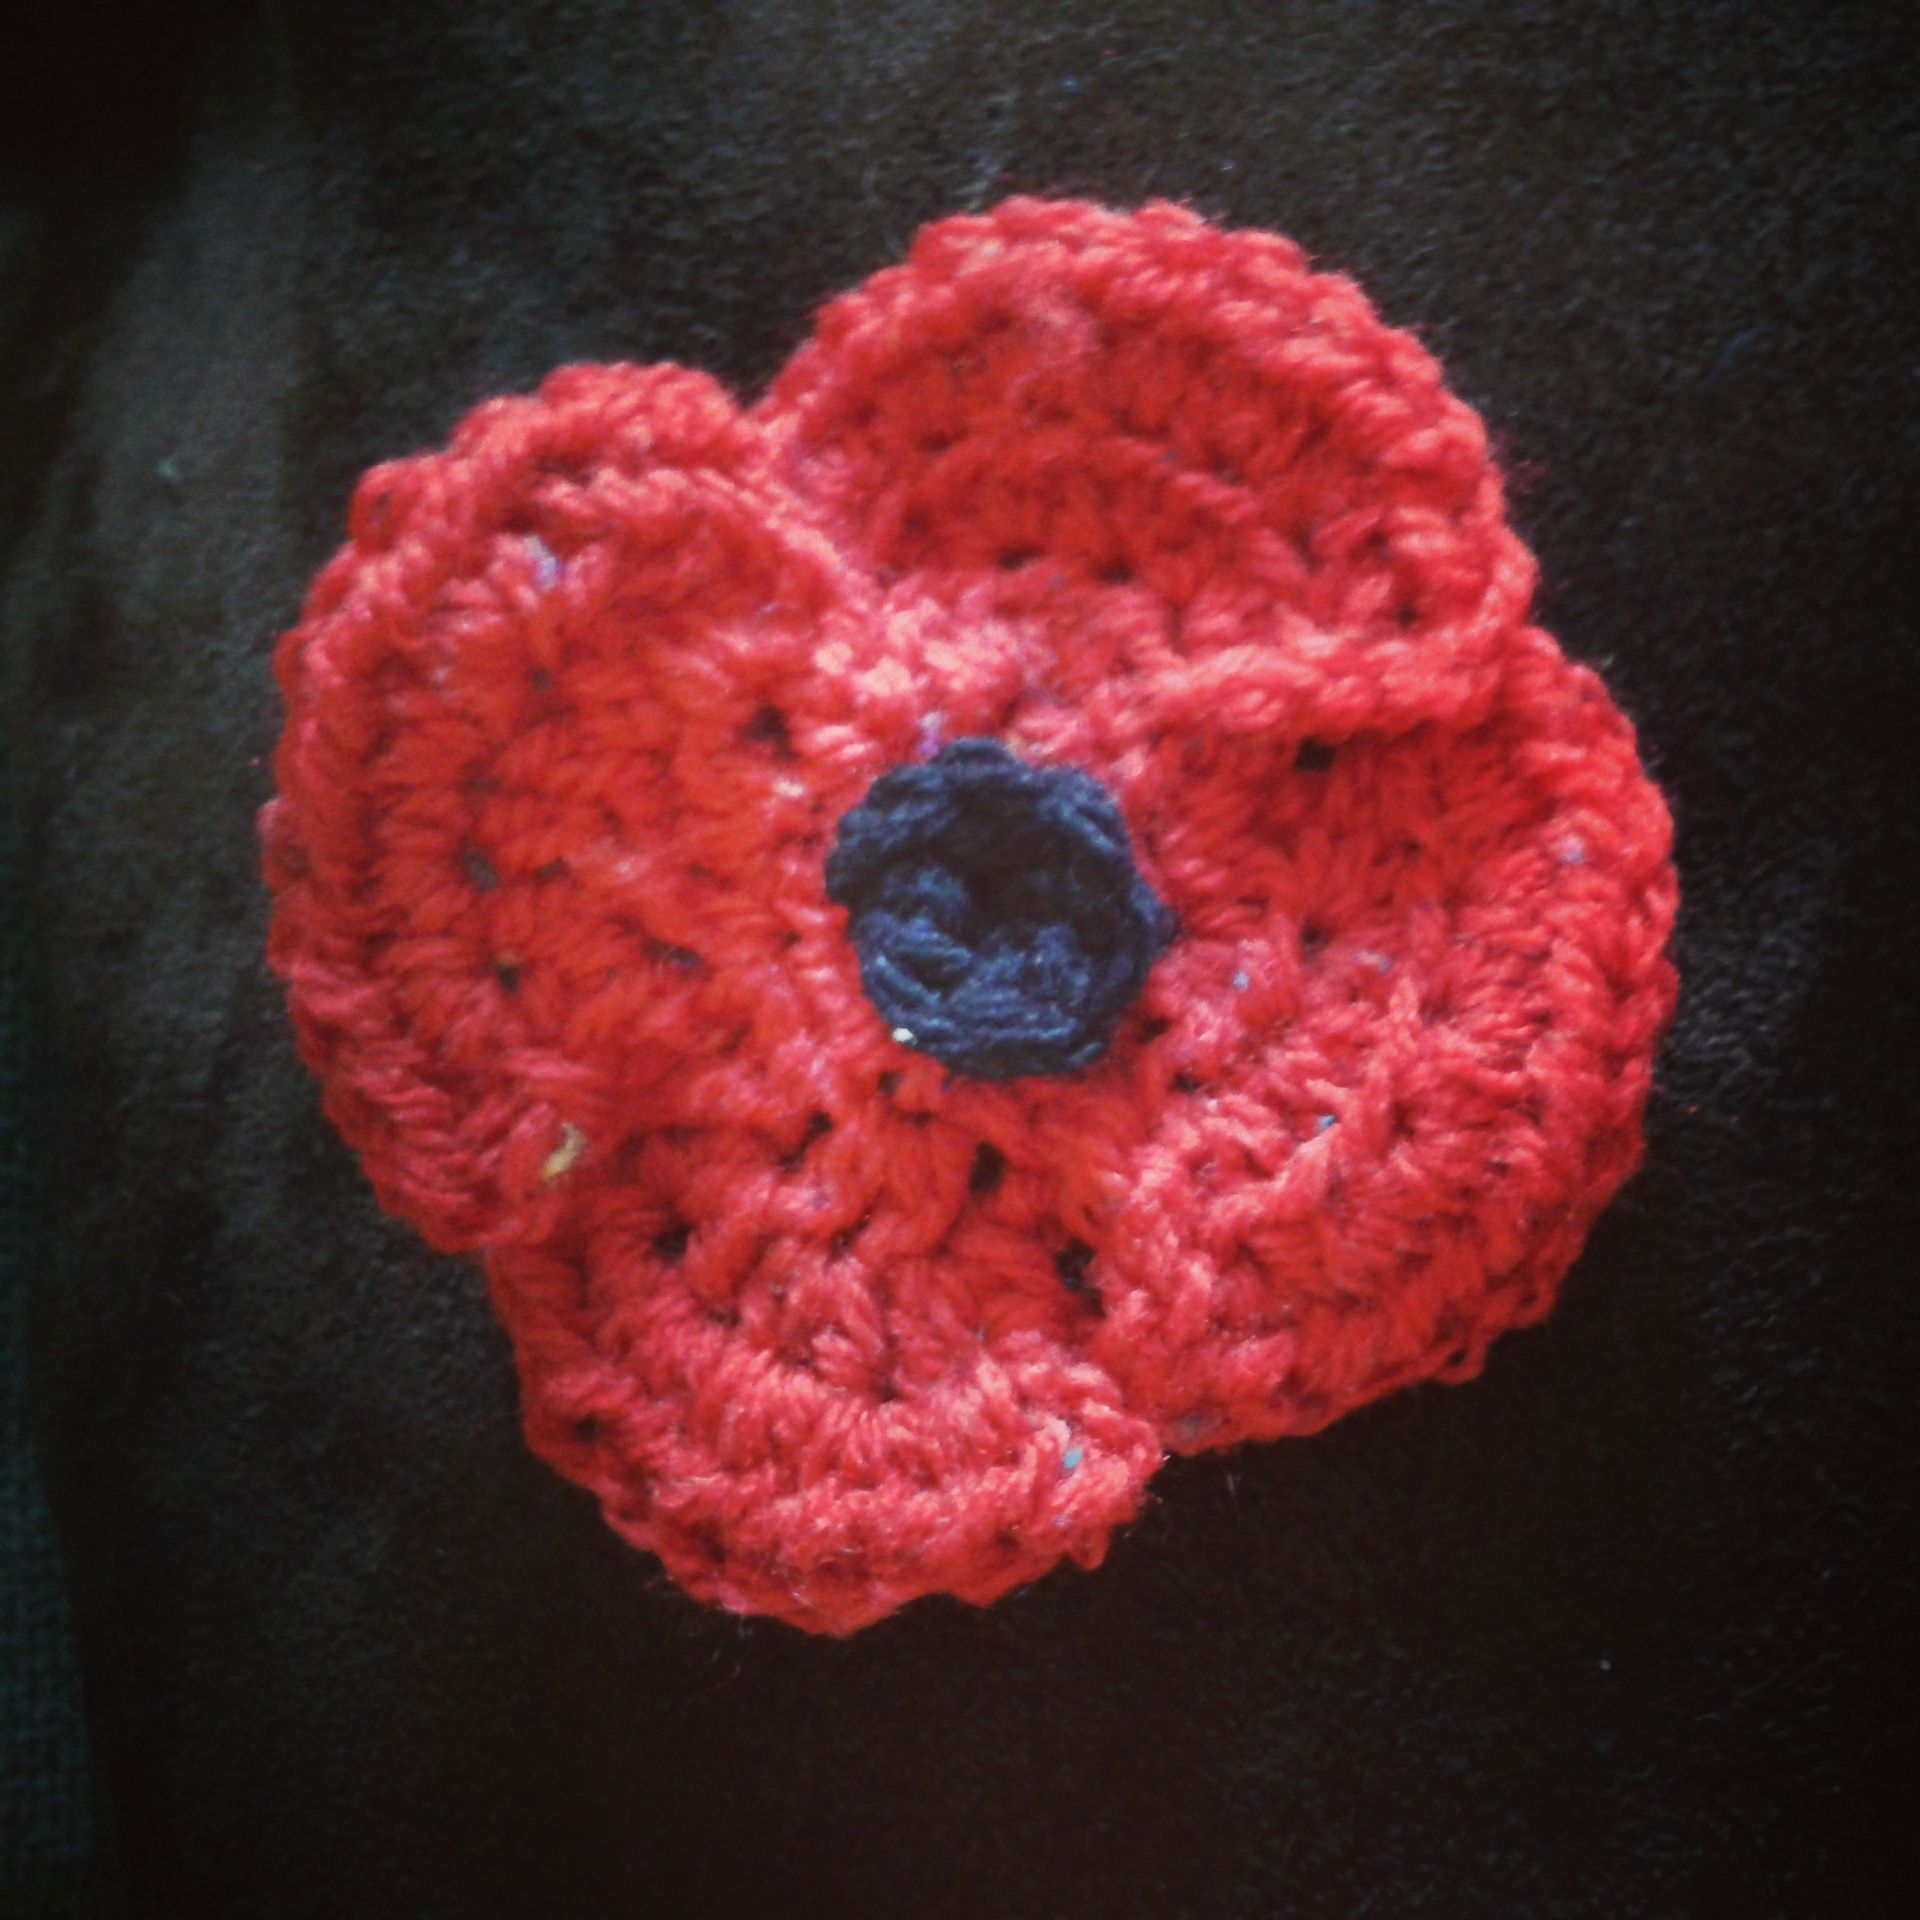 Crochet poppies pattern ok so we were asked to do a few poppies crochet poppies pattern ok so we were asked to do a few poppies most of bankloansurffo Image collections